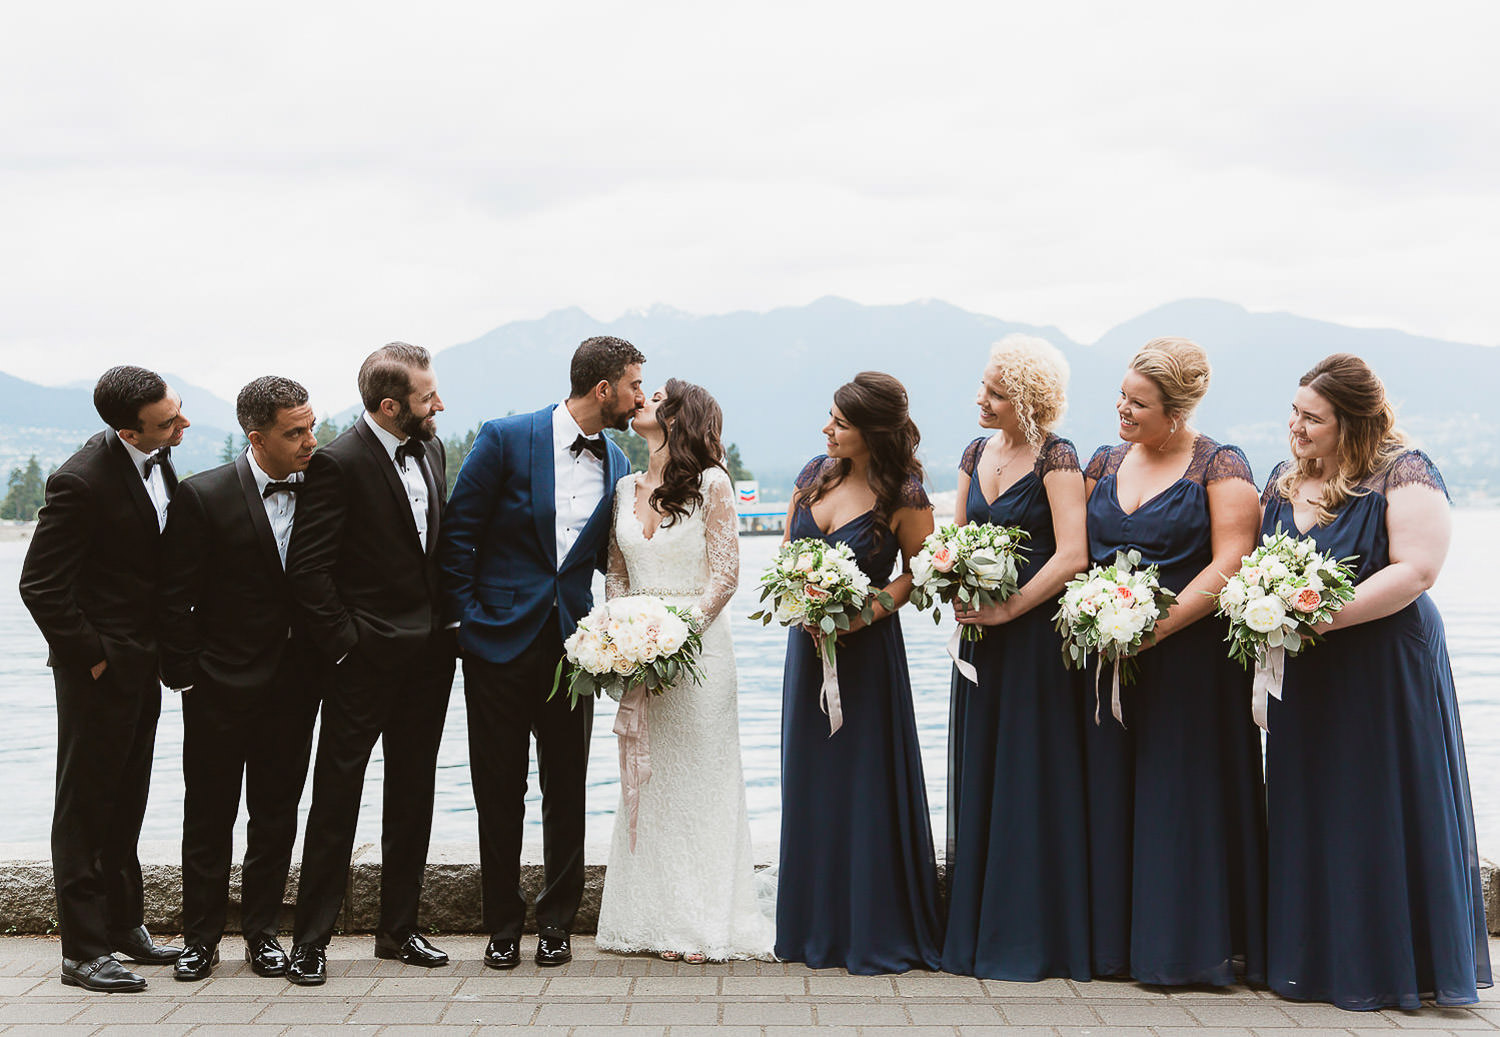 Informal wedding party portrait | Photo: Camilla Anchisi